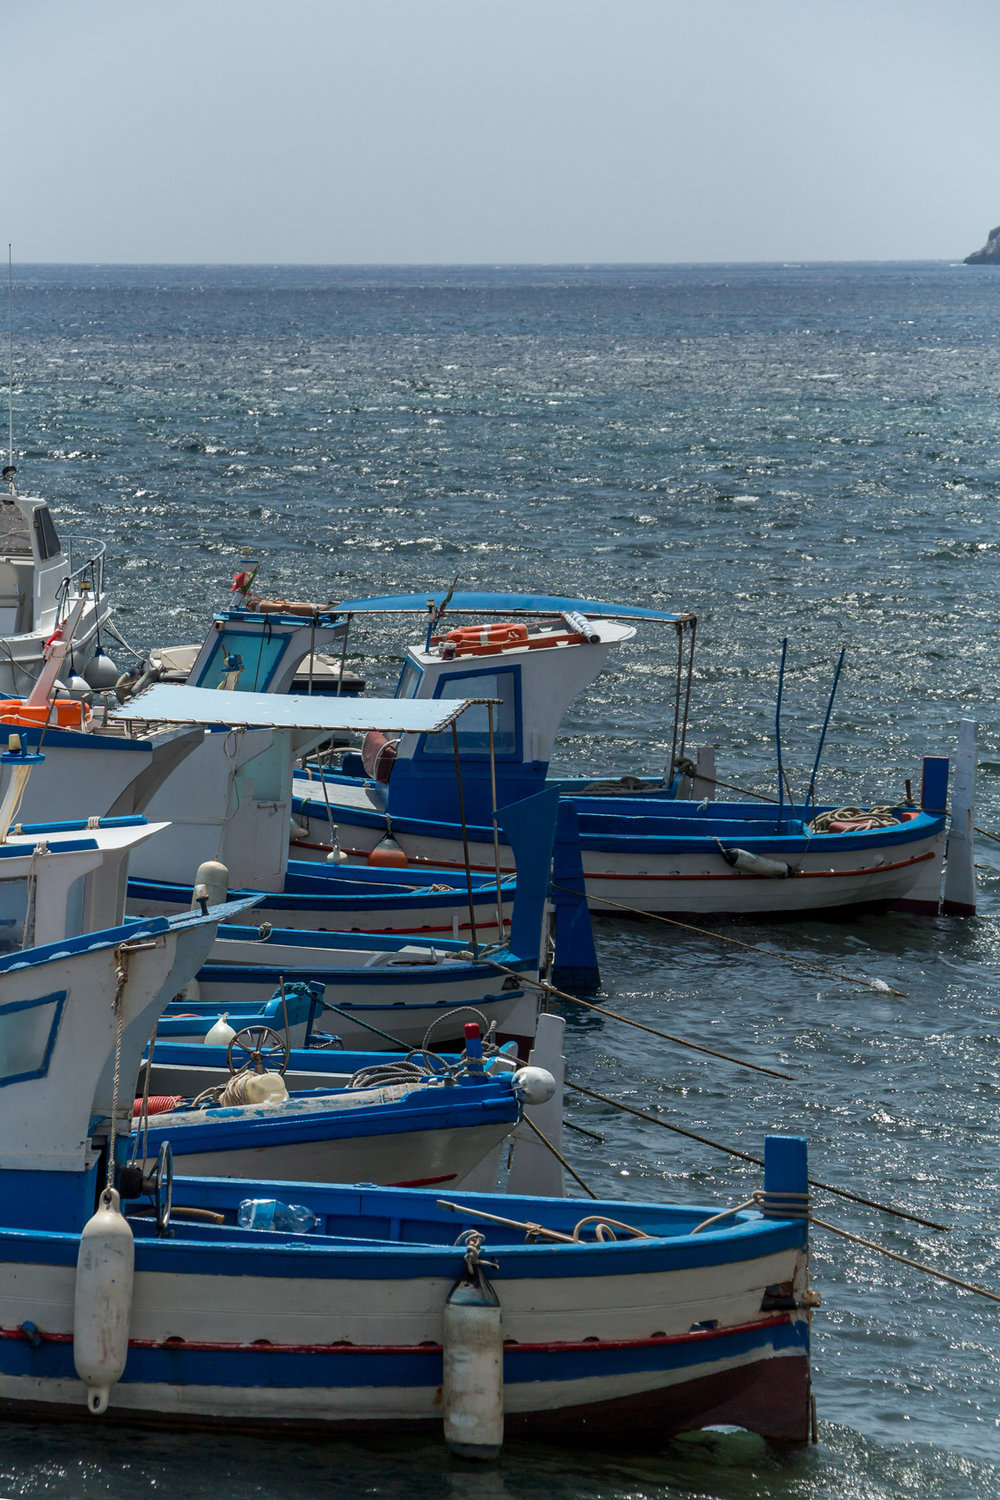 Colorful boats on Marettimo island, Sicily